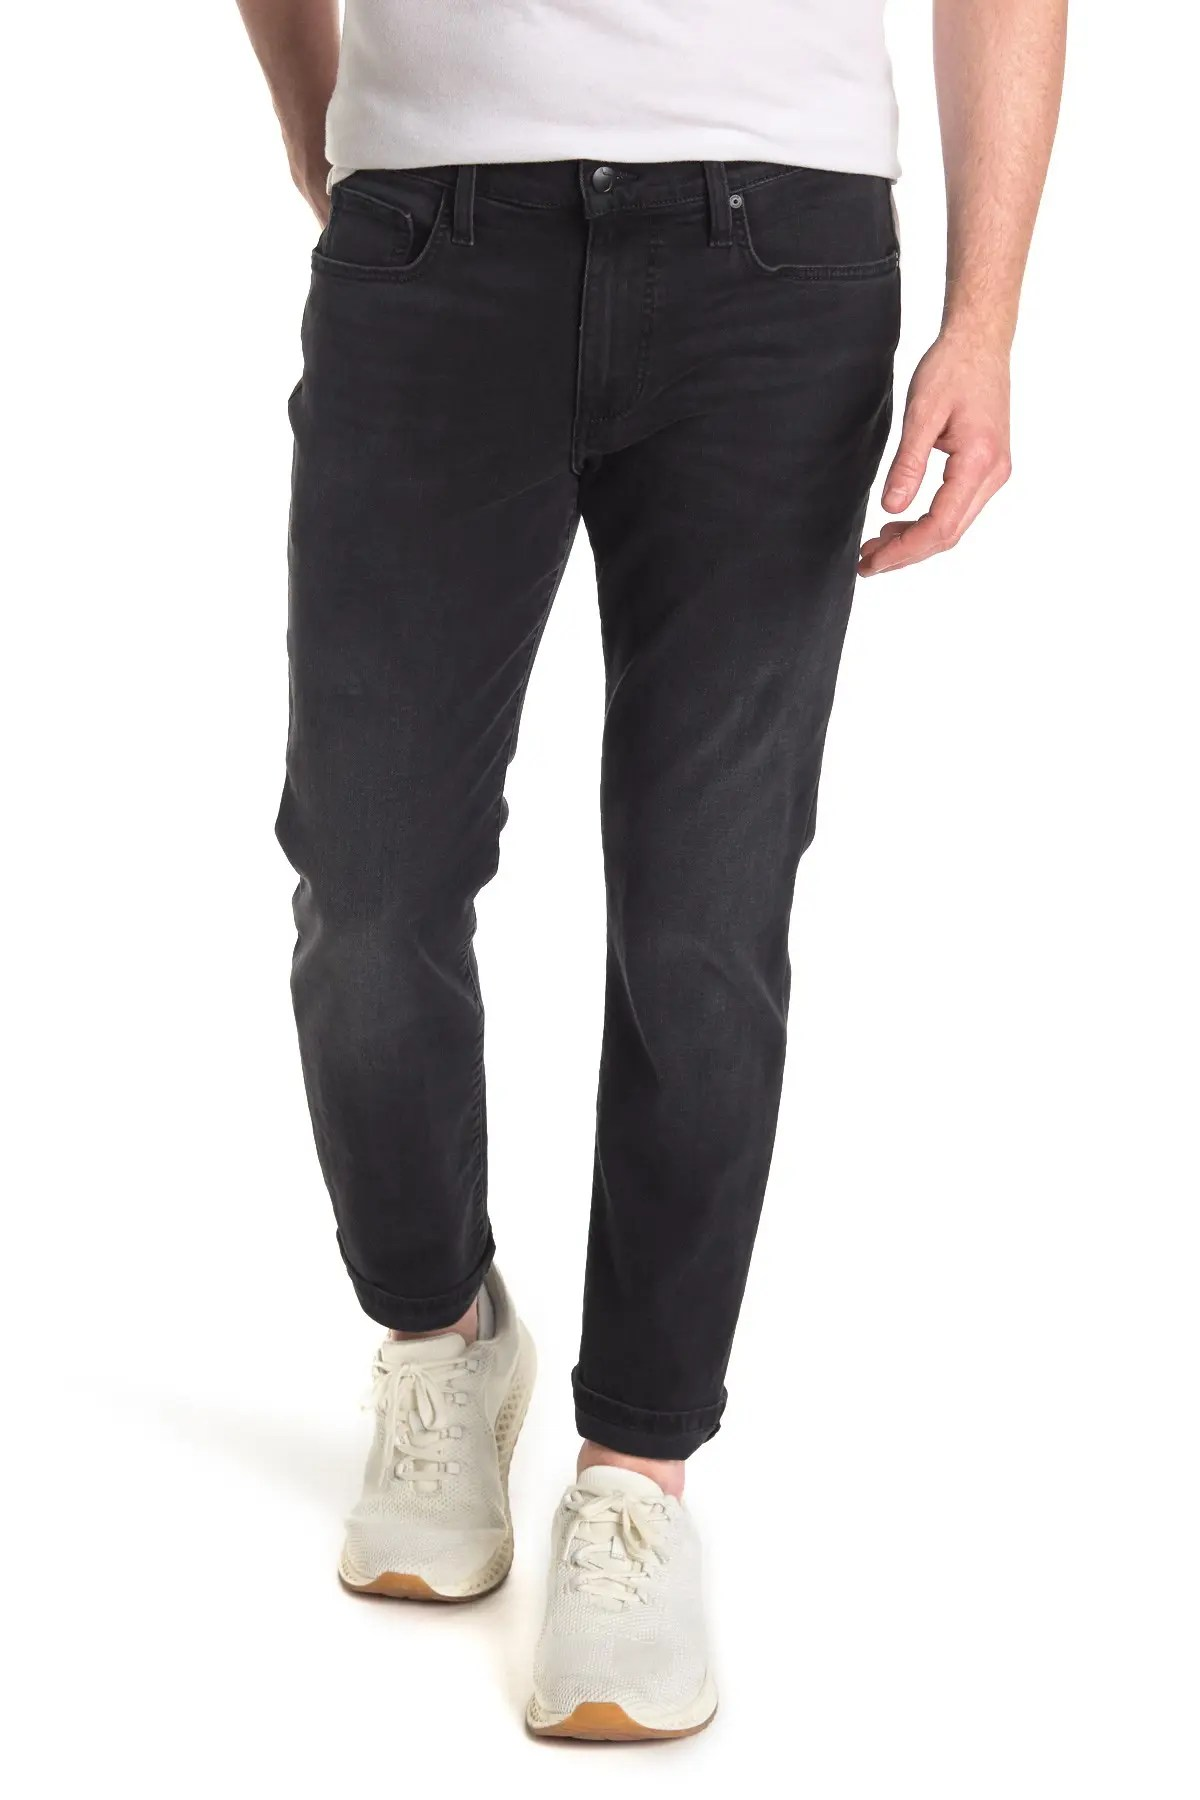 the slim fit jeans